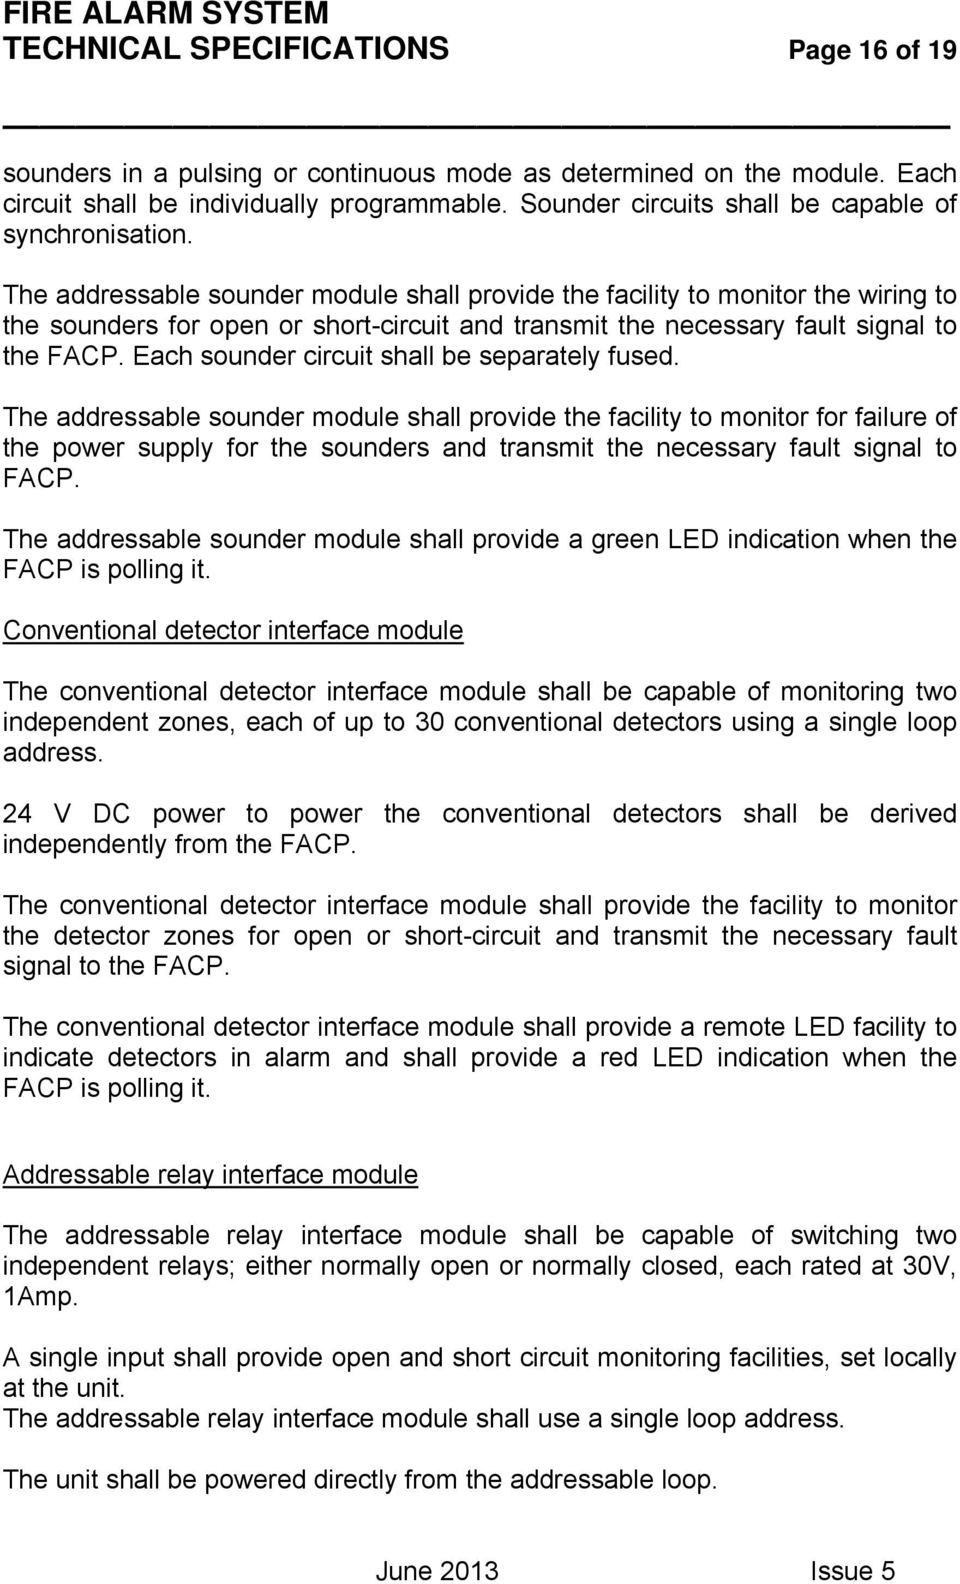 Fire Alarm System Technical Specifications Page 1 Of 19 Pdf Intelligent Schematic Diagram The Addressable Sounder Module Shall Provide Facility To Monitor Wiring Sounders For